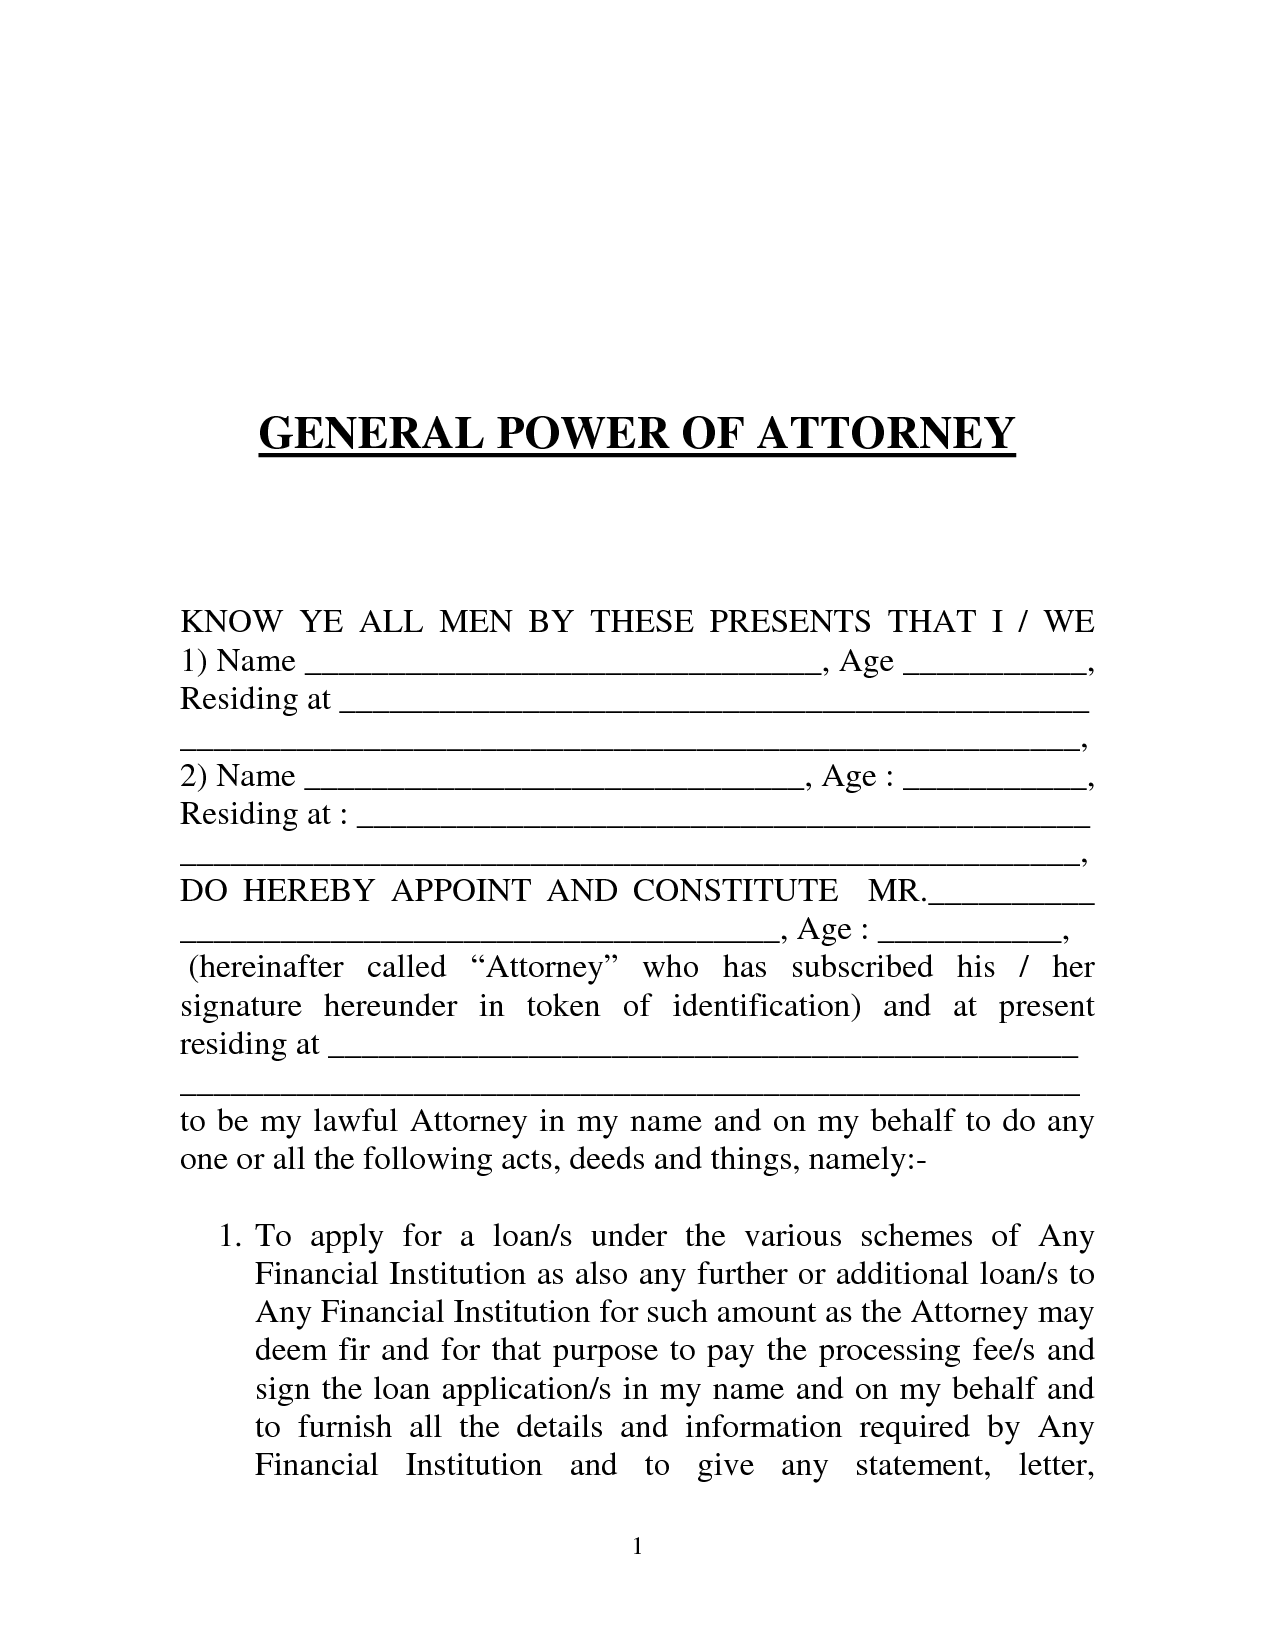 General power of attorney form india by prettytulips letter of general power of attorney form india by prettytulips letter of attorney falaconquin